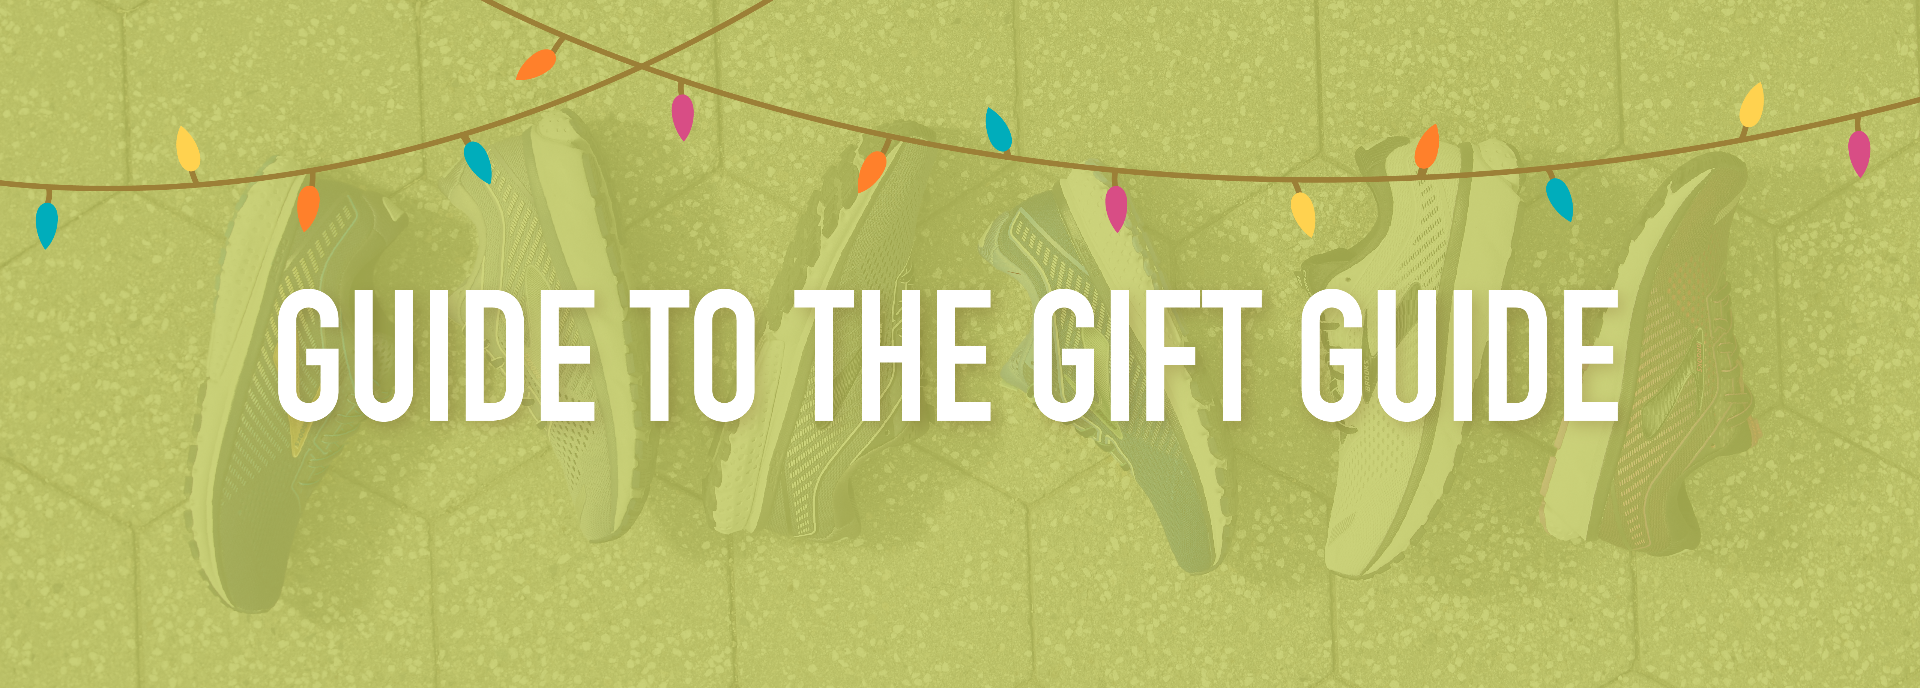 Guide to the Gift Guide Blog Post